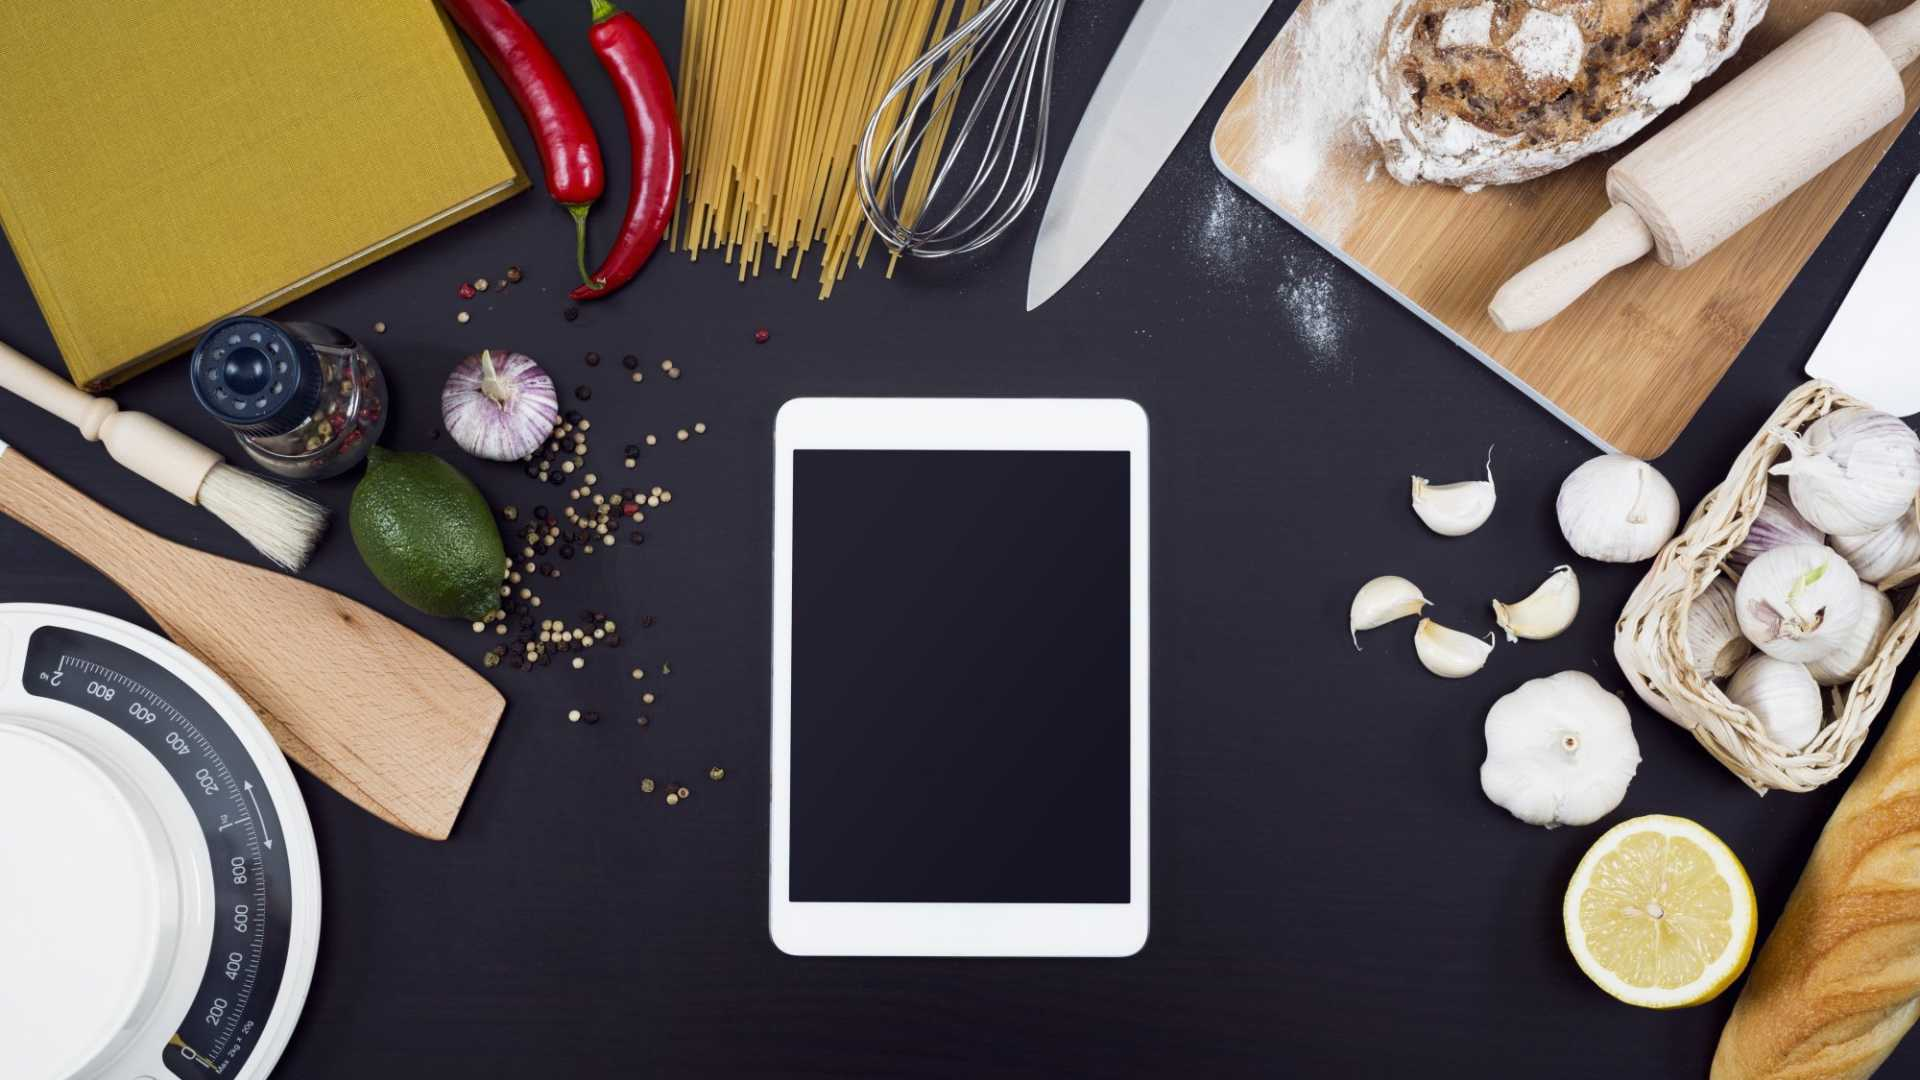 Your kitchen counter and your smart device are teaming up.